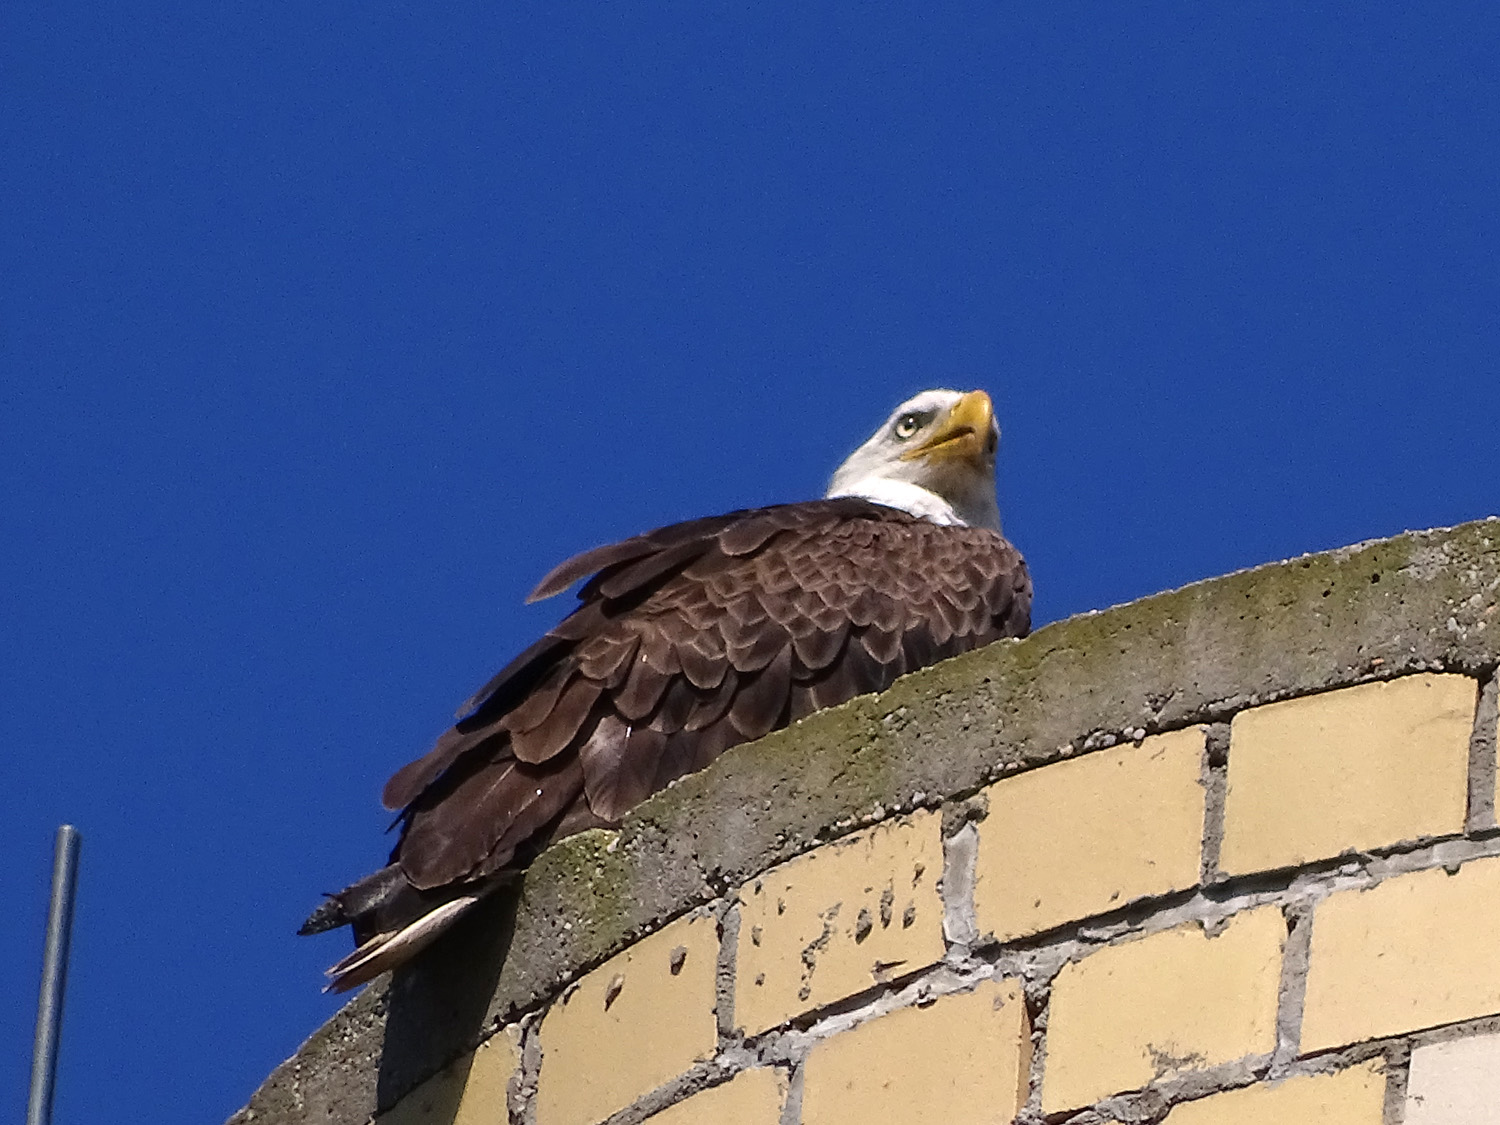 Papa eagle on the utility tower behind the church at Mt. Loretto, July 4, 2019